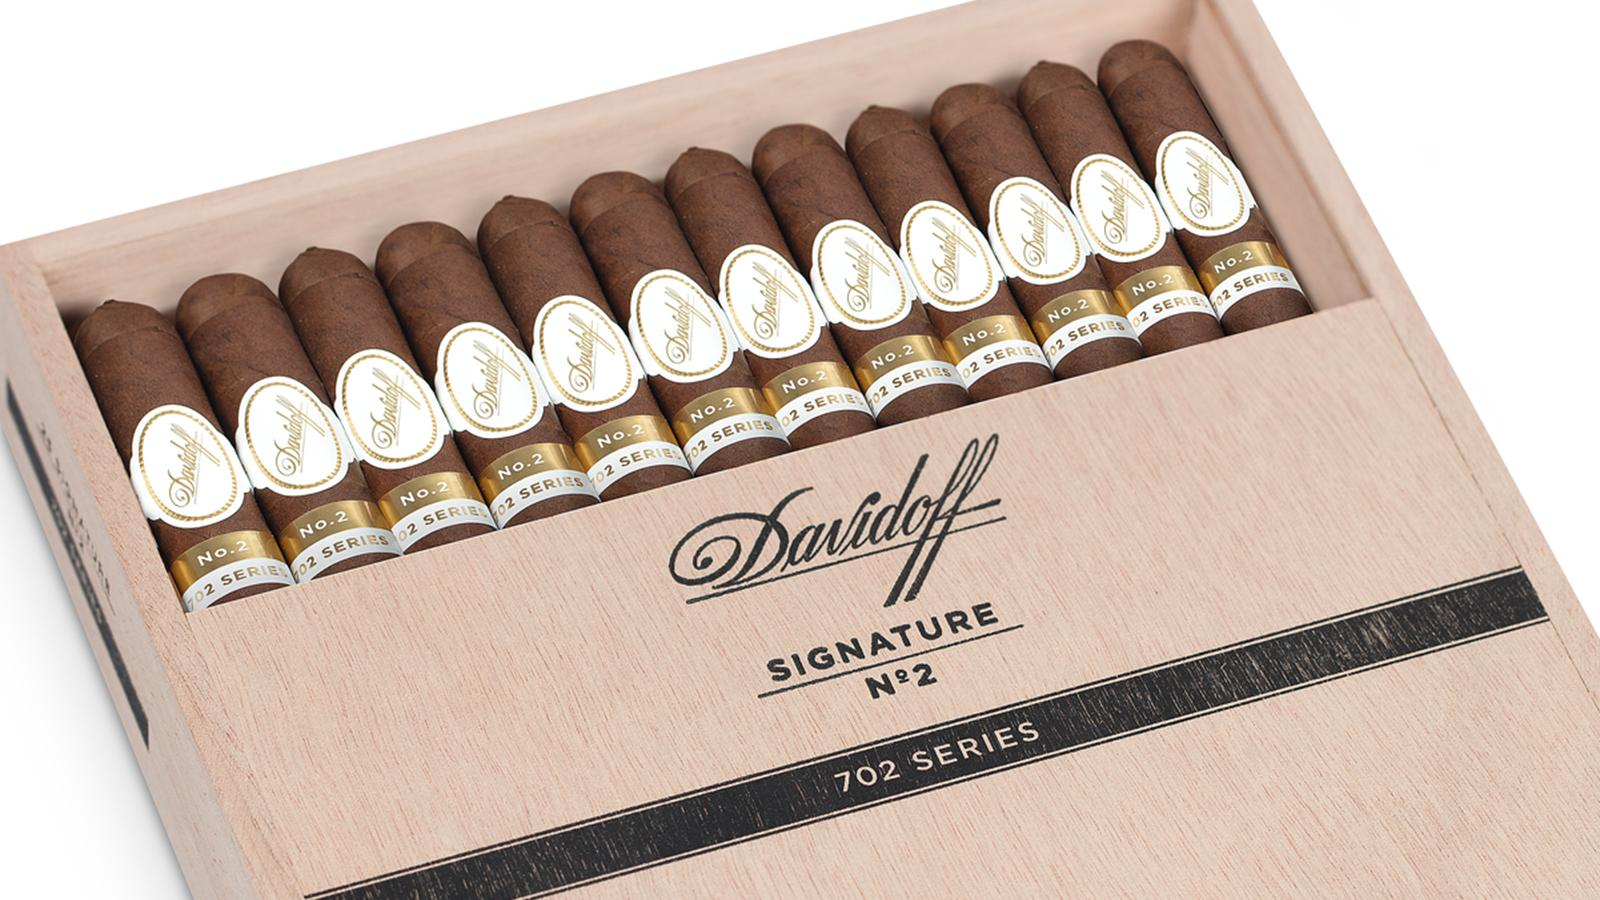 Davidoff Spices Up Portfolio With New 702 Series